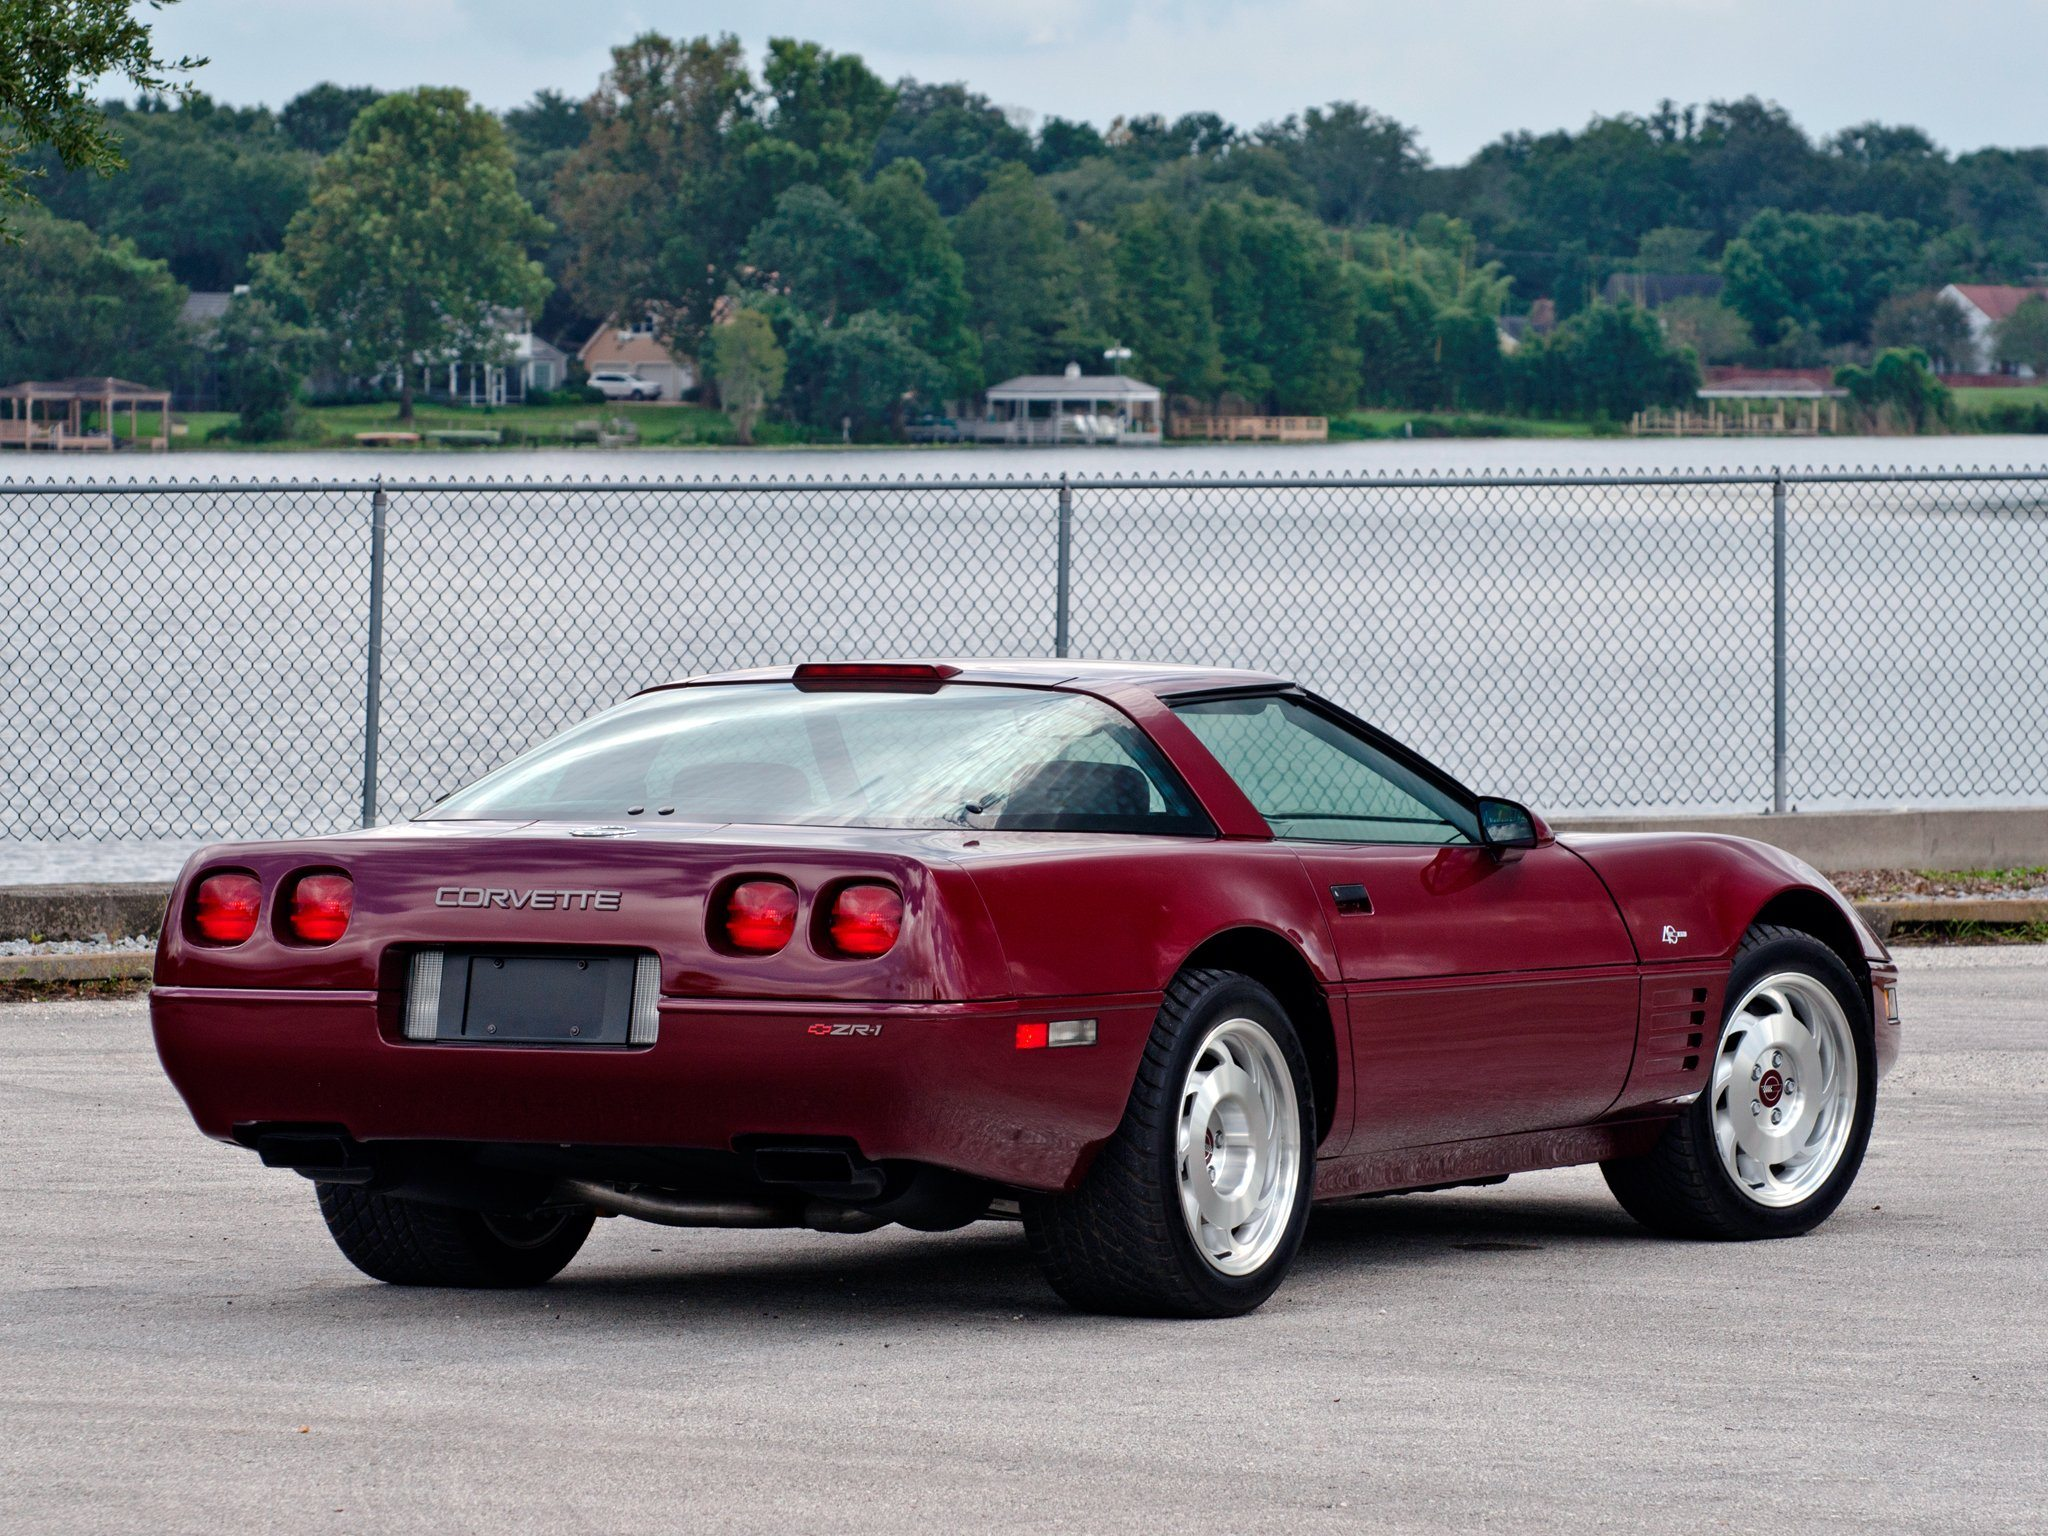 1993 c4 corvette ultimate guide overview specs vin info performance more. Black Bedroom Furniture Sets. Home Design Ideas